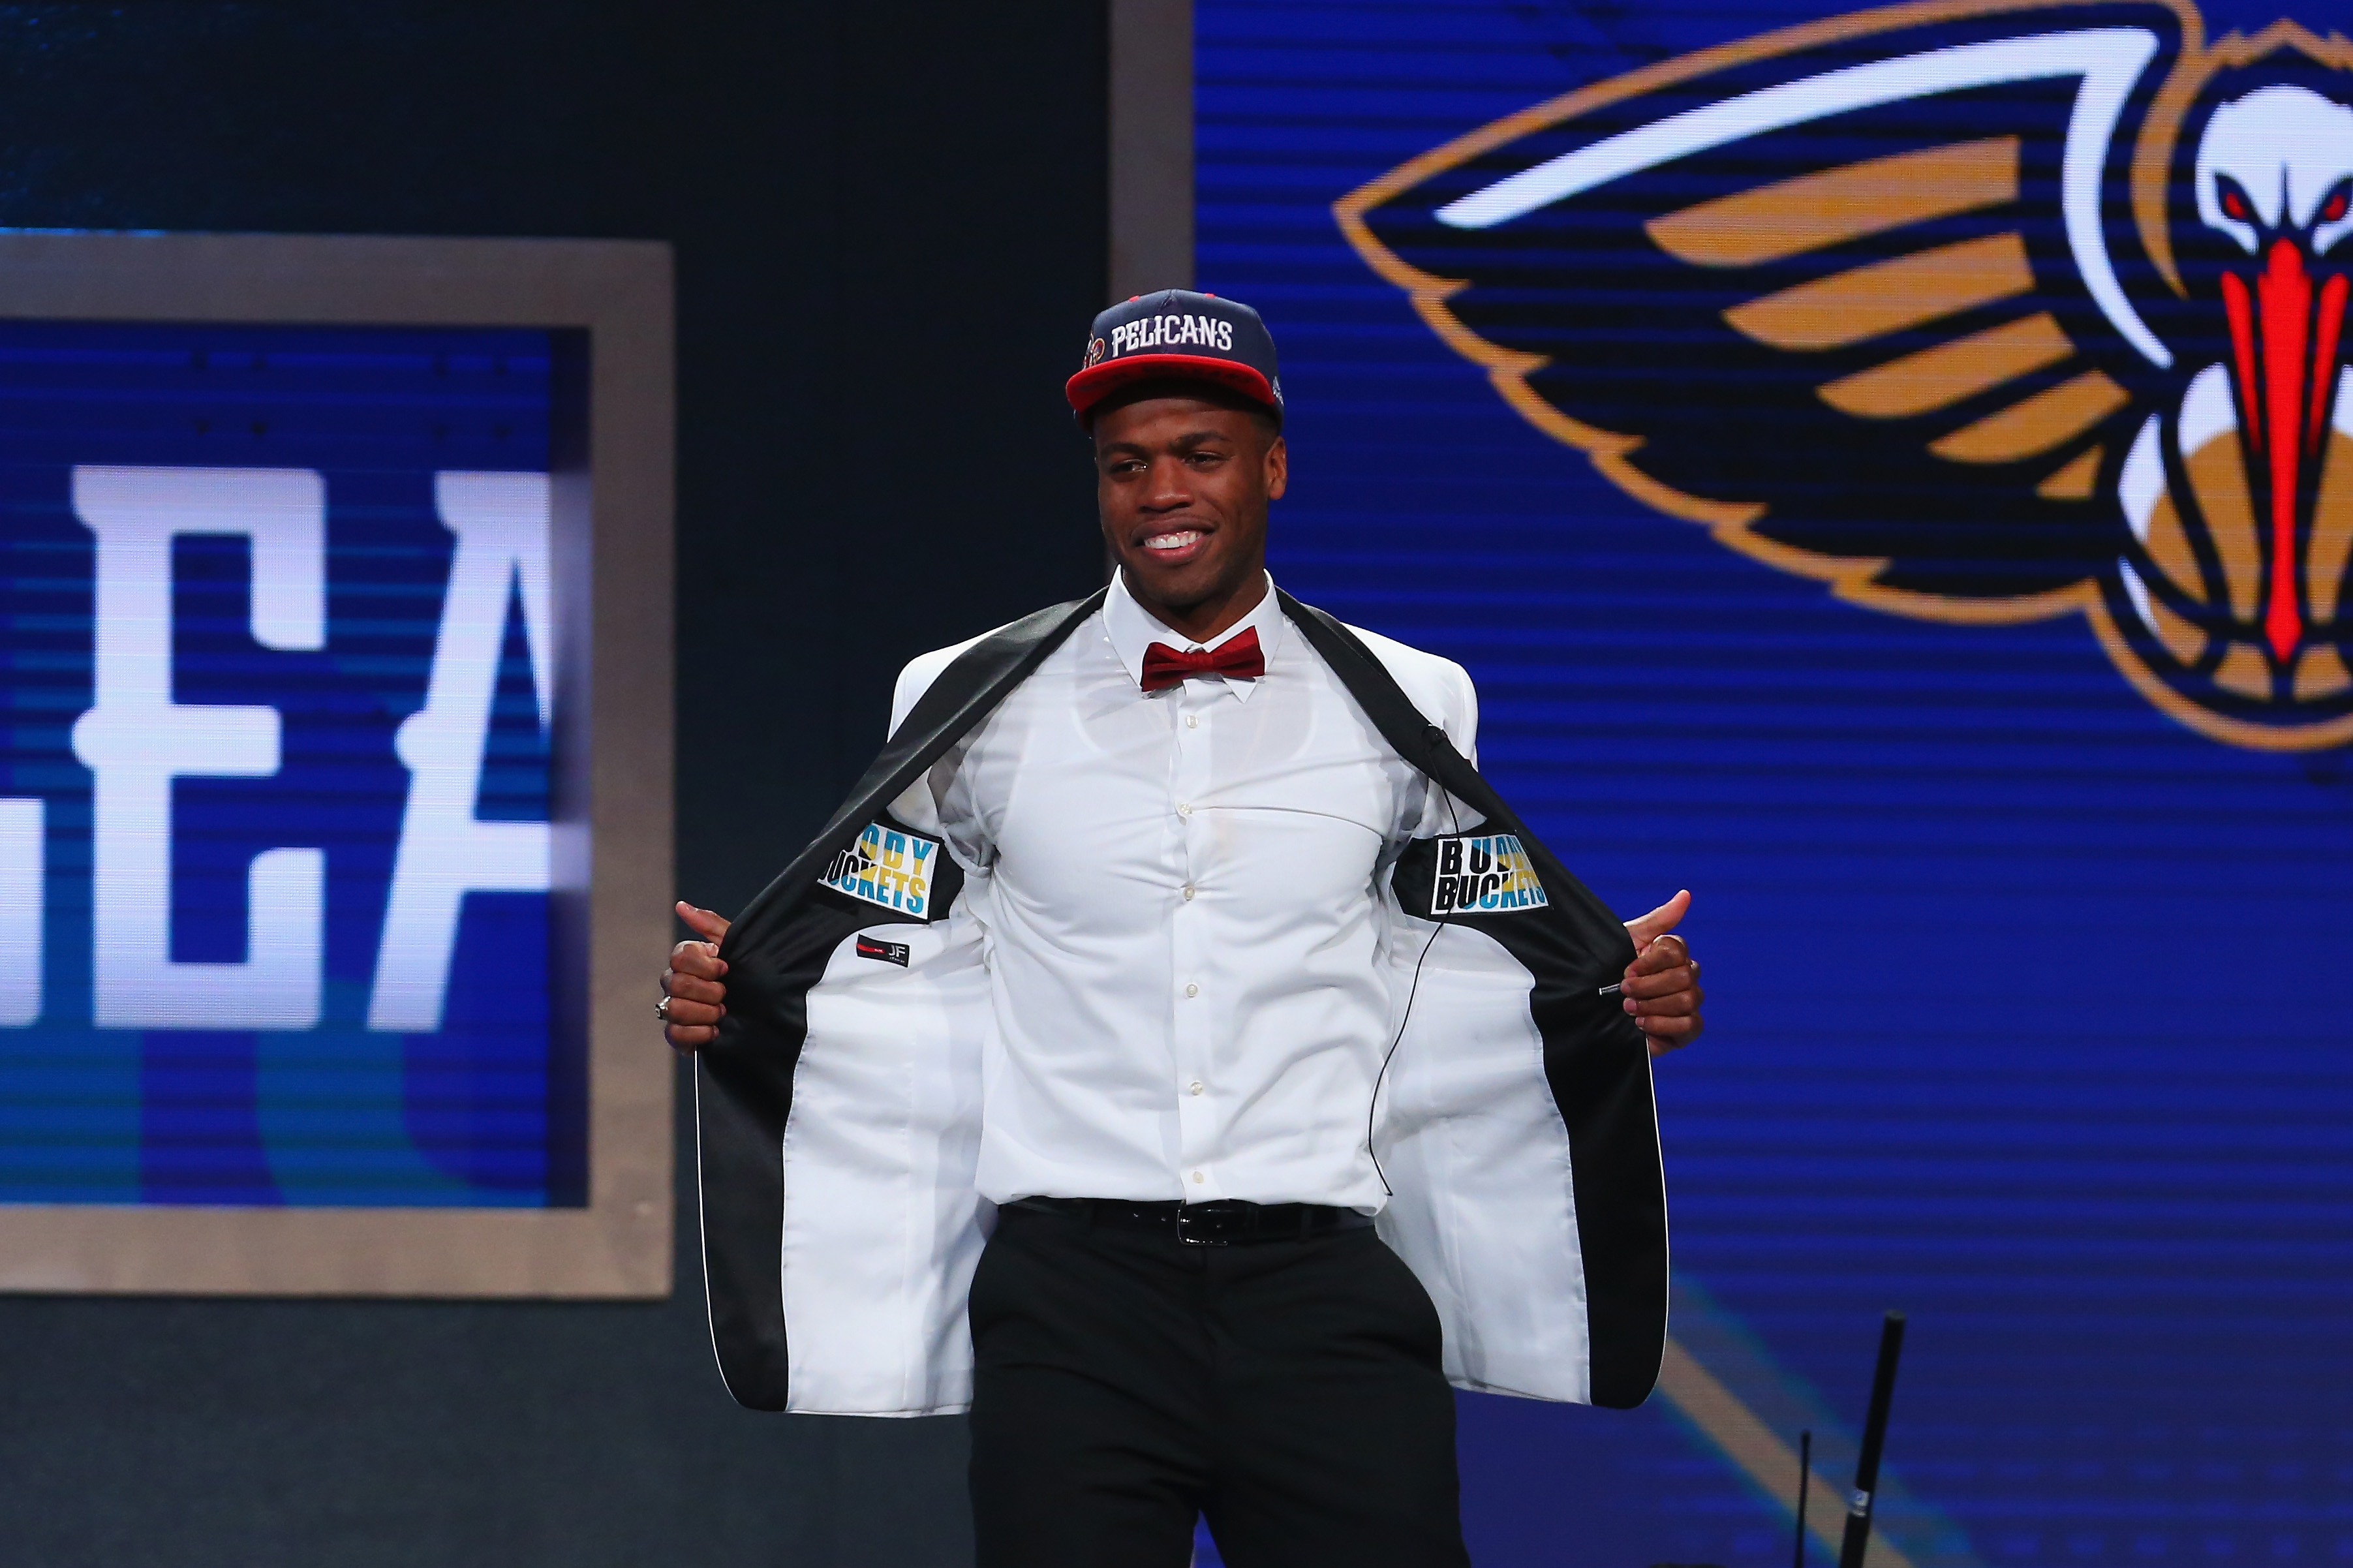 Buddy Hield went for a dapper white tuxedo jacket, which was nicely complemented by his red bow tie and  Buddy Buckets  embellishments inside the jacket.